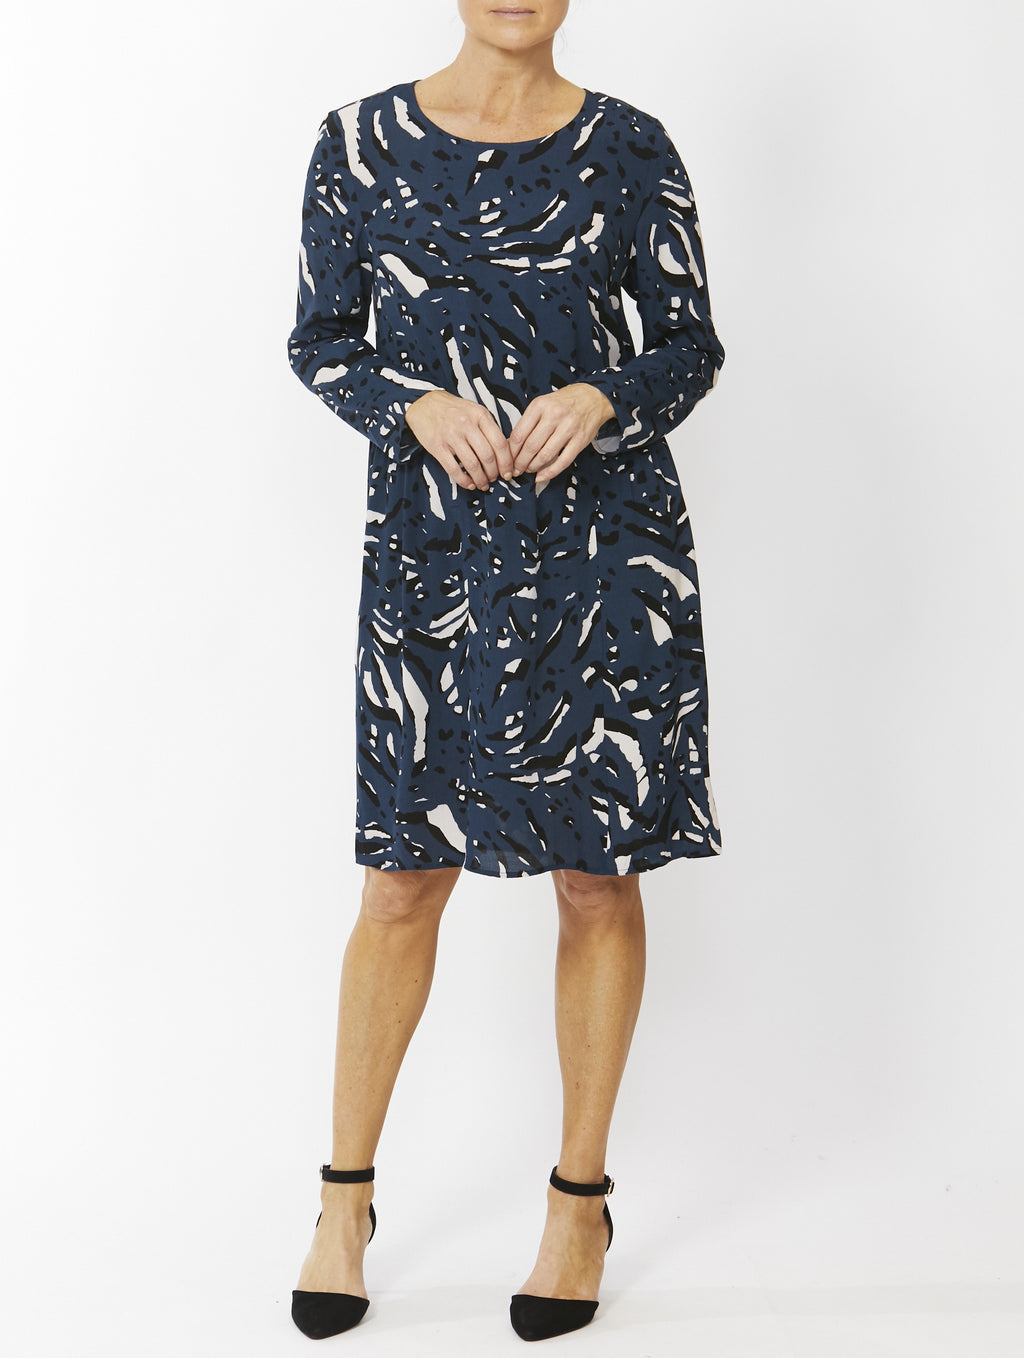 Ping Pong - Pop Art print dress - Navy